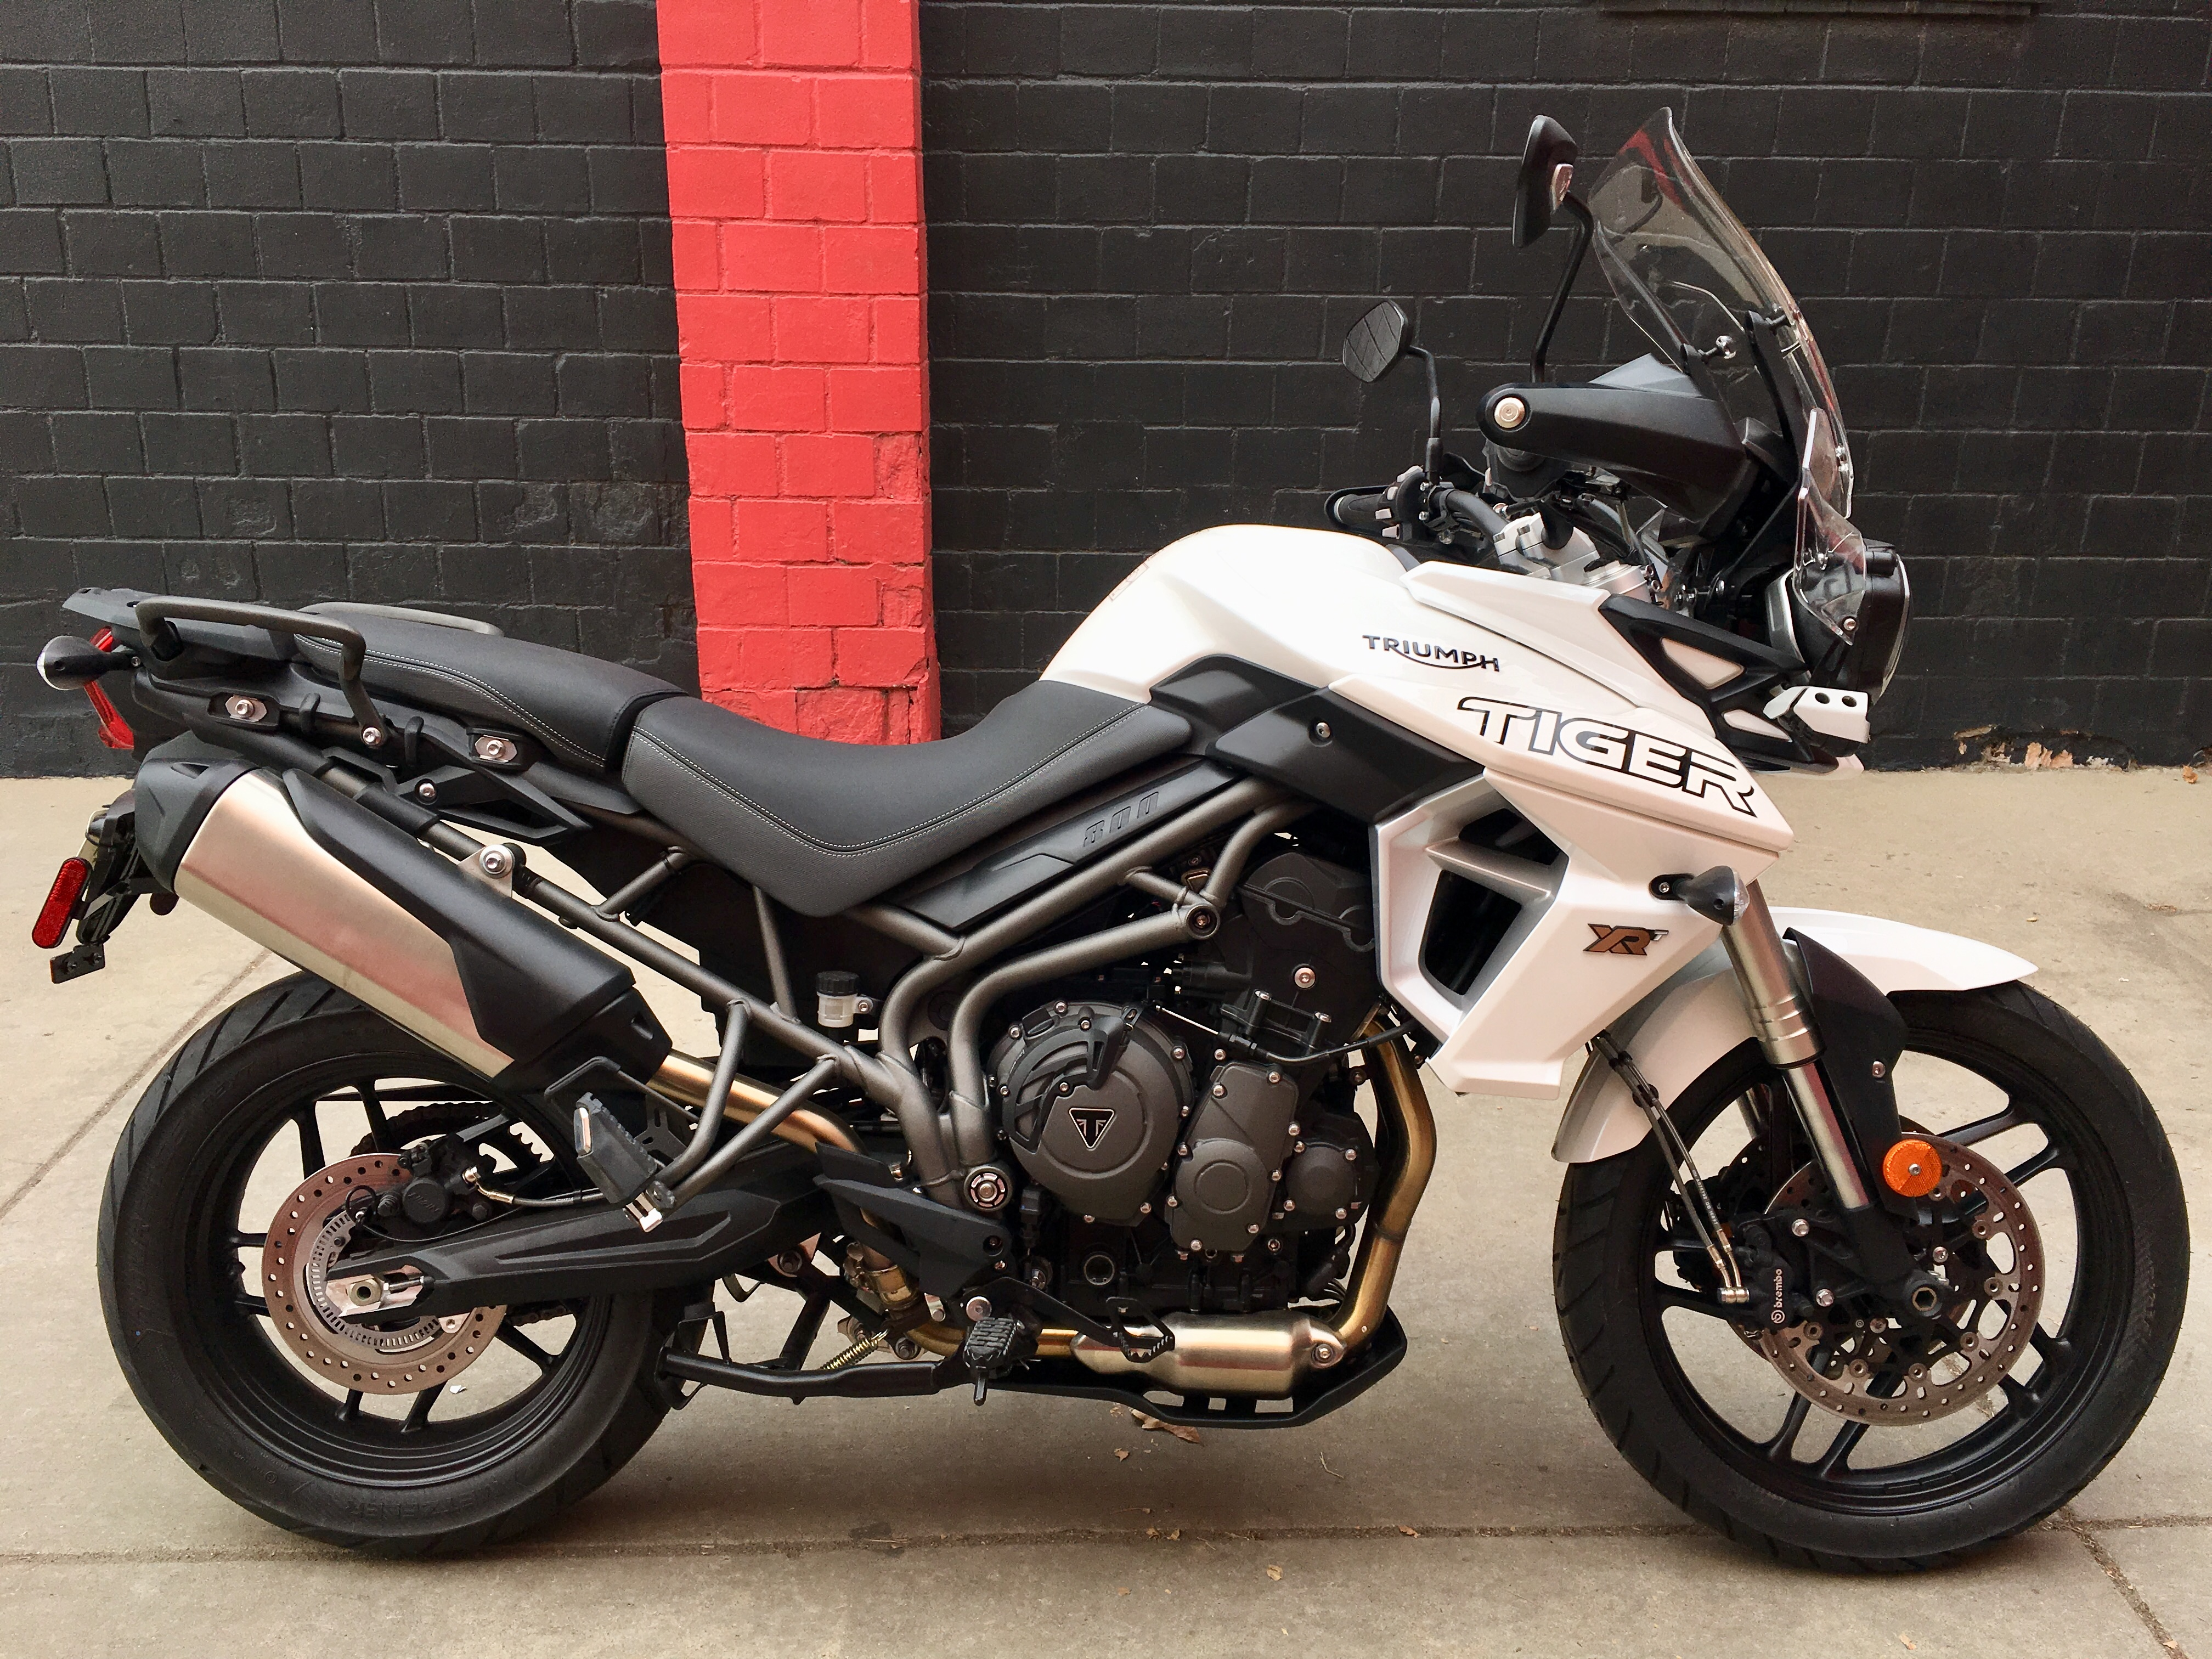 New 2019 TRIUMPH TIGER 800 XRT Demo